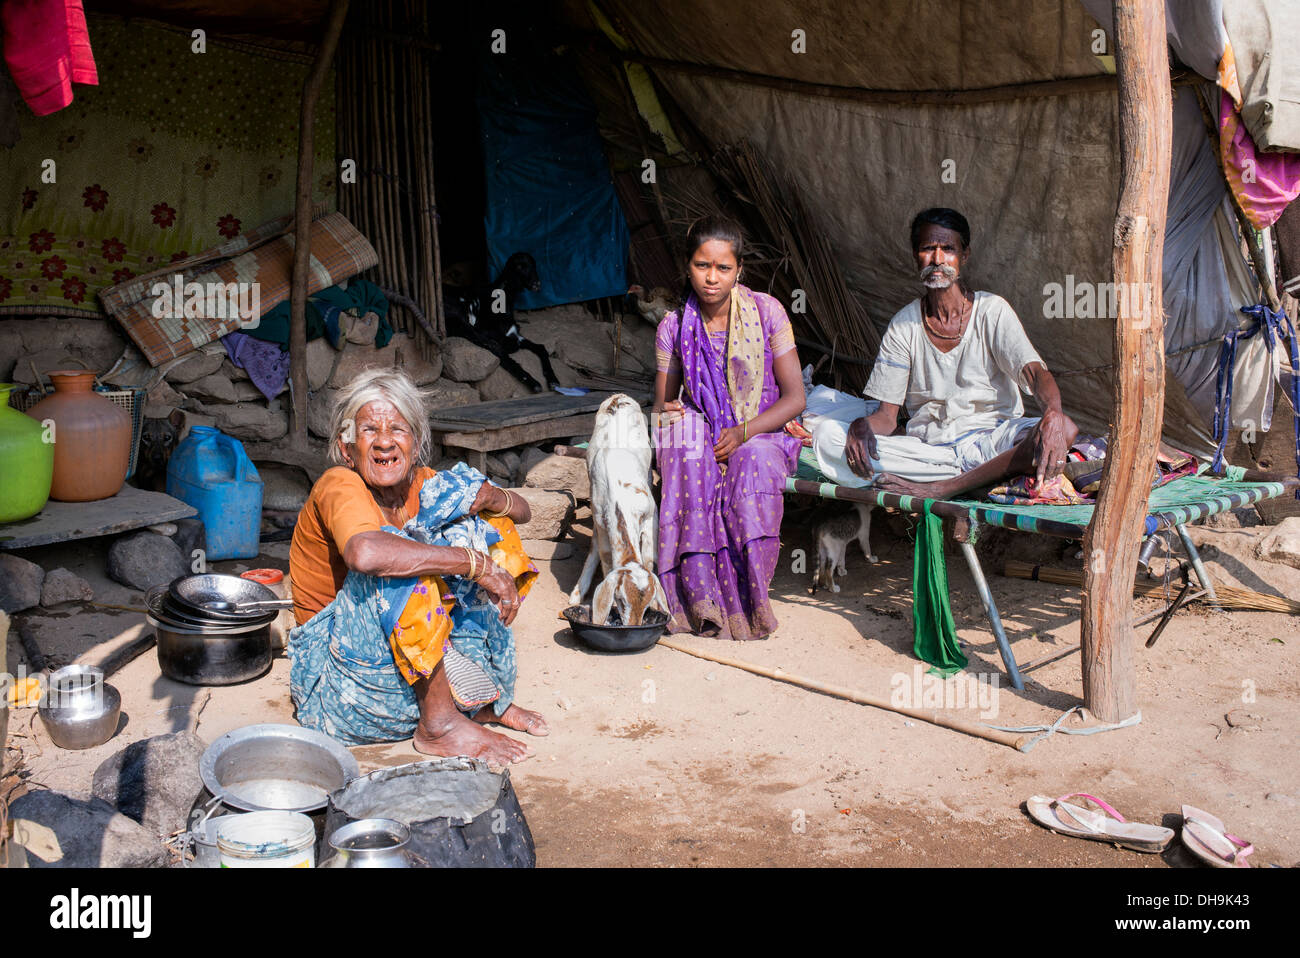 Lower caste Indian family sitting inside their bender / tent / shelter. Andhra Pradesh, India. - Stock Image